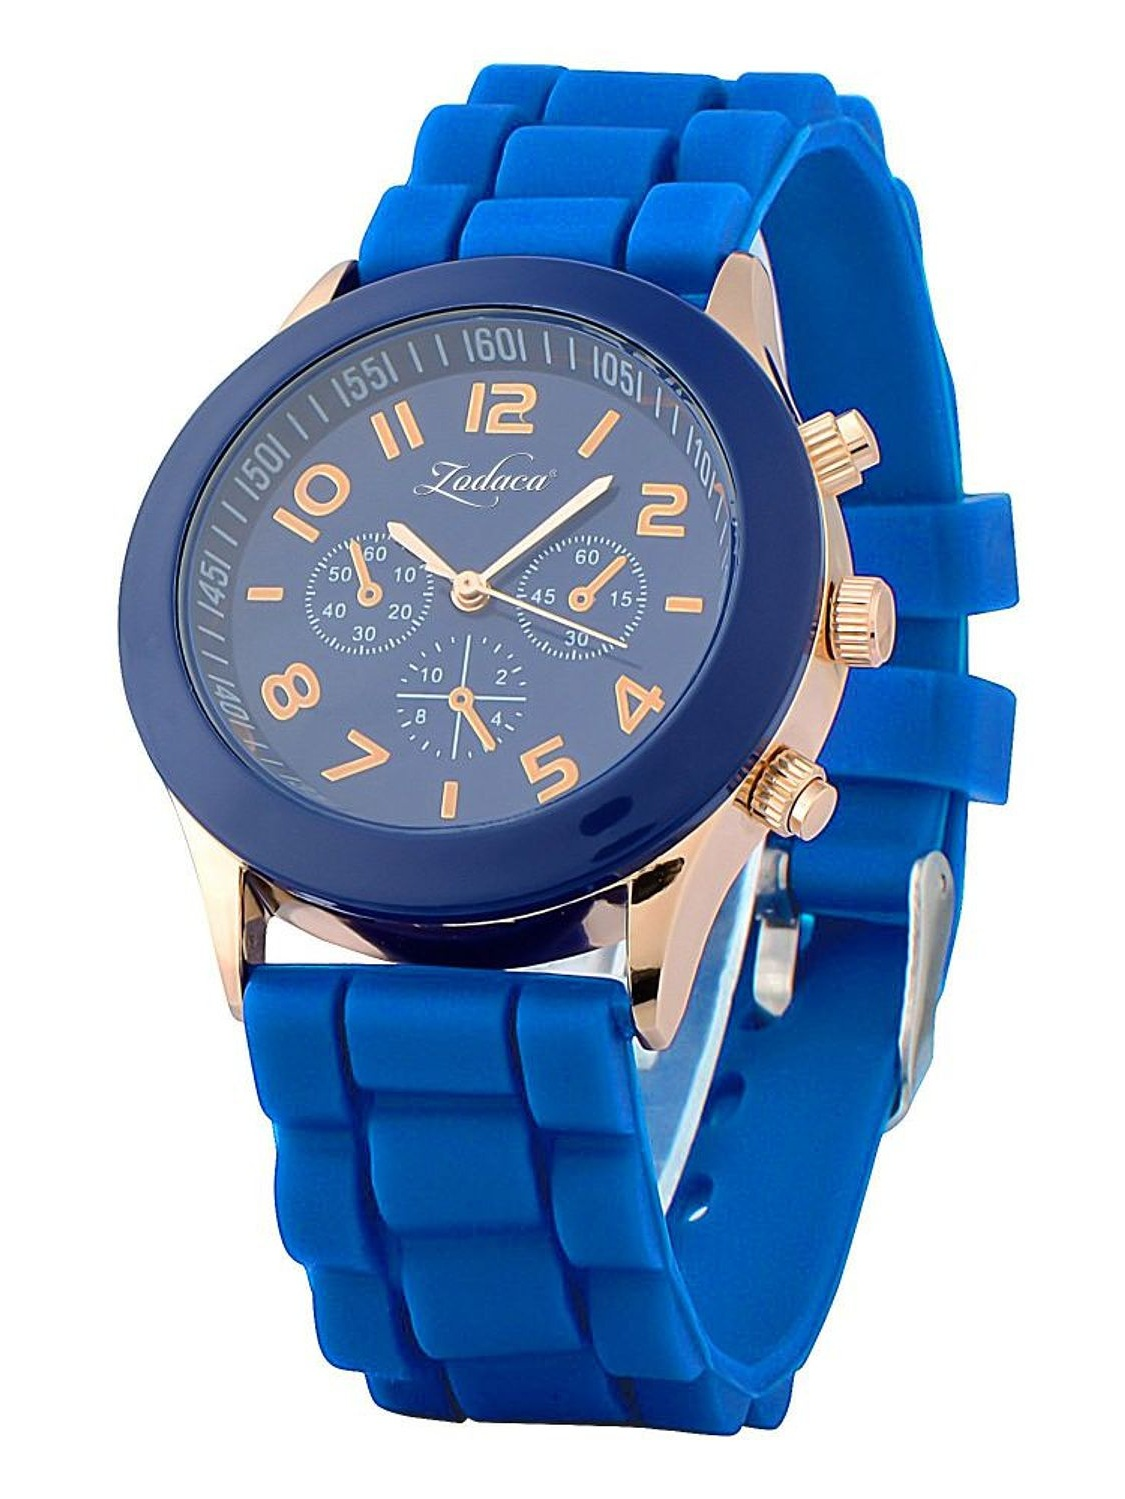 Zodaca Dark Blue Unisex Men Women Silicone Jelly Quartz Analog Sports Wrist Watch New